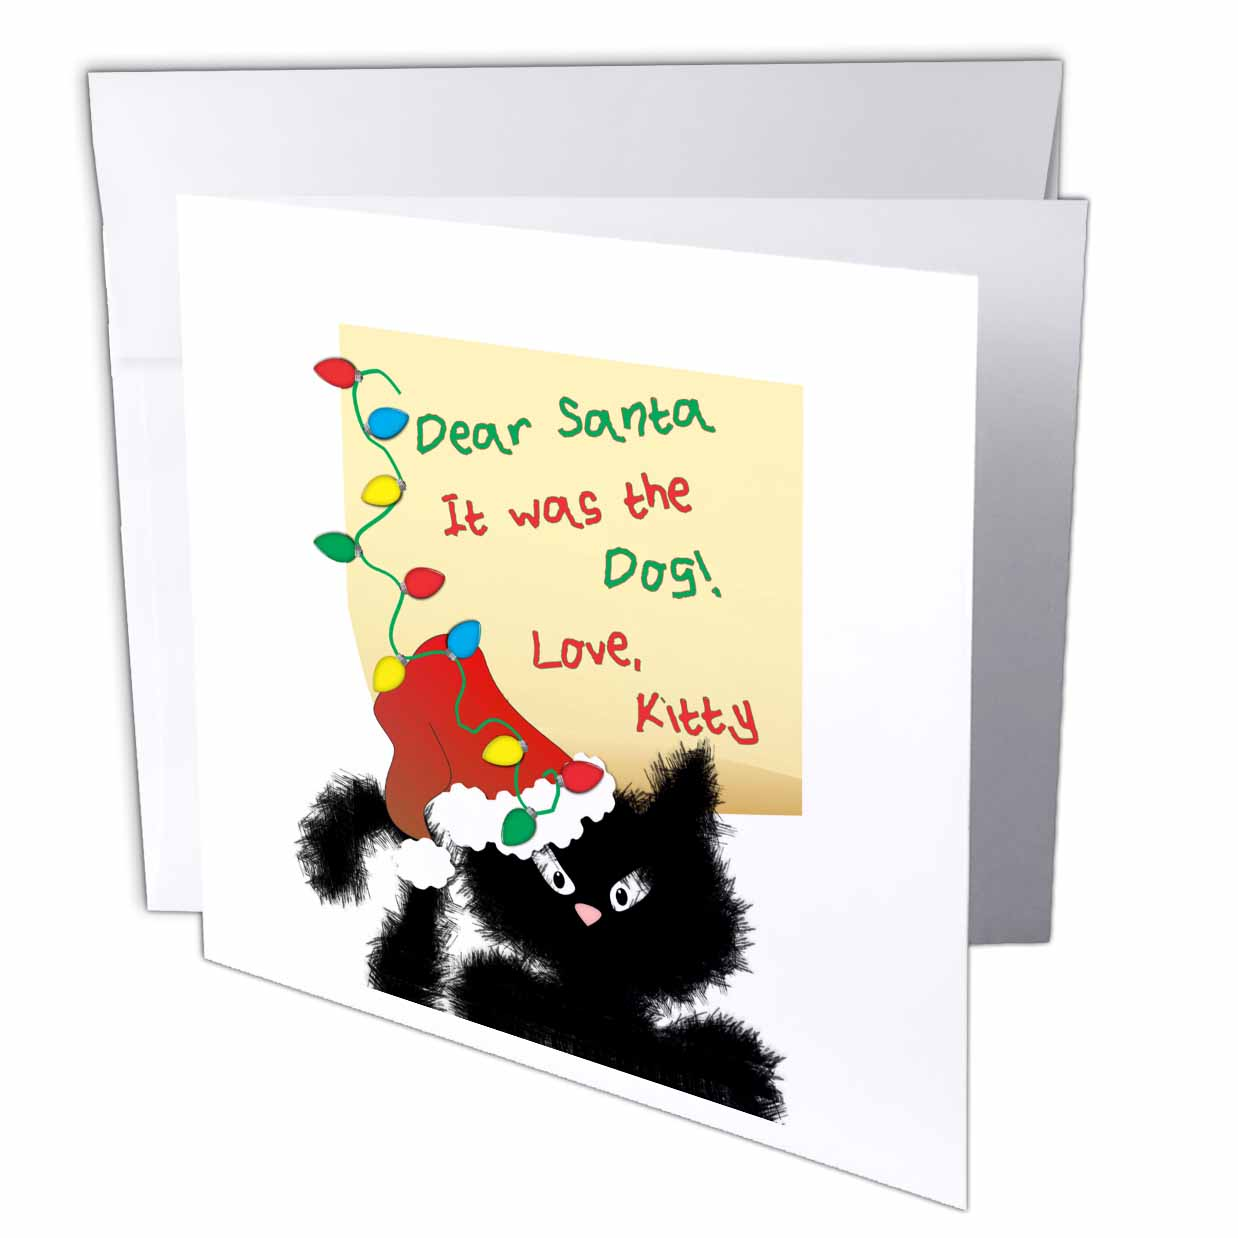 3dRose Funny Fuzzy Black Cat Dear Santa Christmas Letter, Greeting Cards, 6 x 6 inches, set of 12